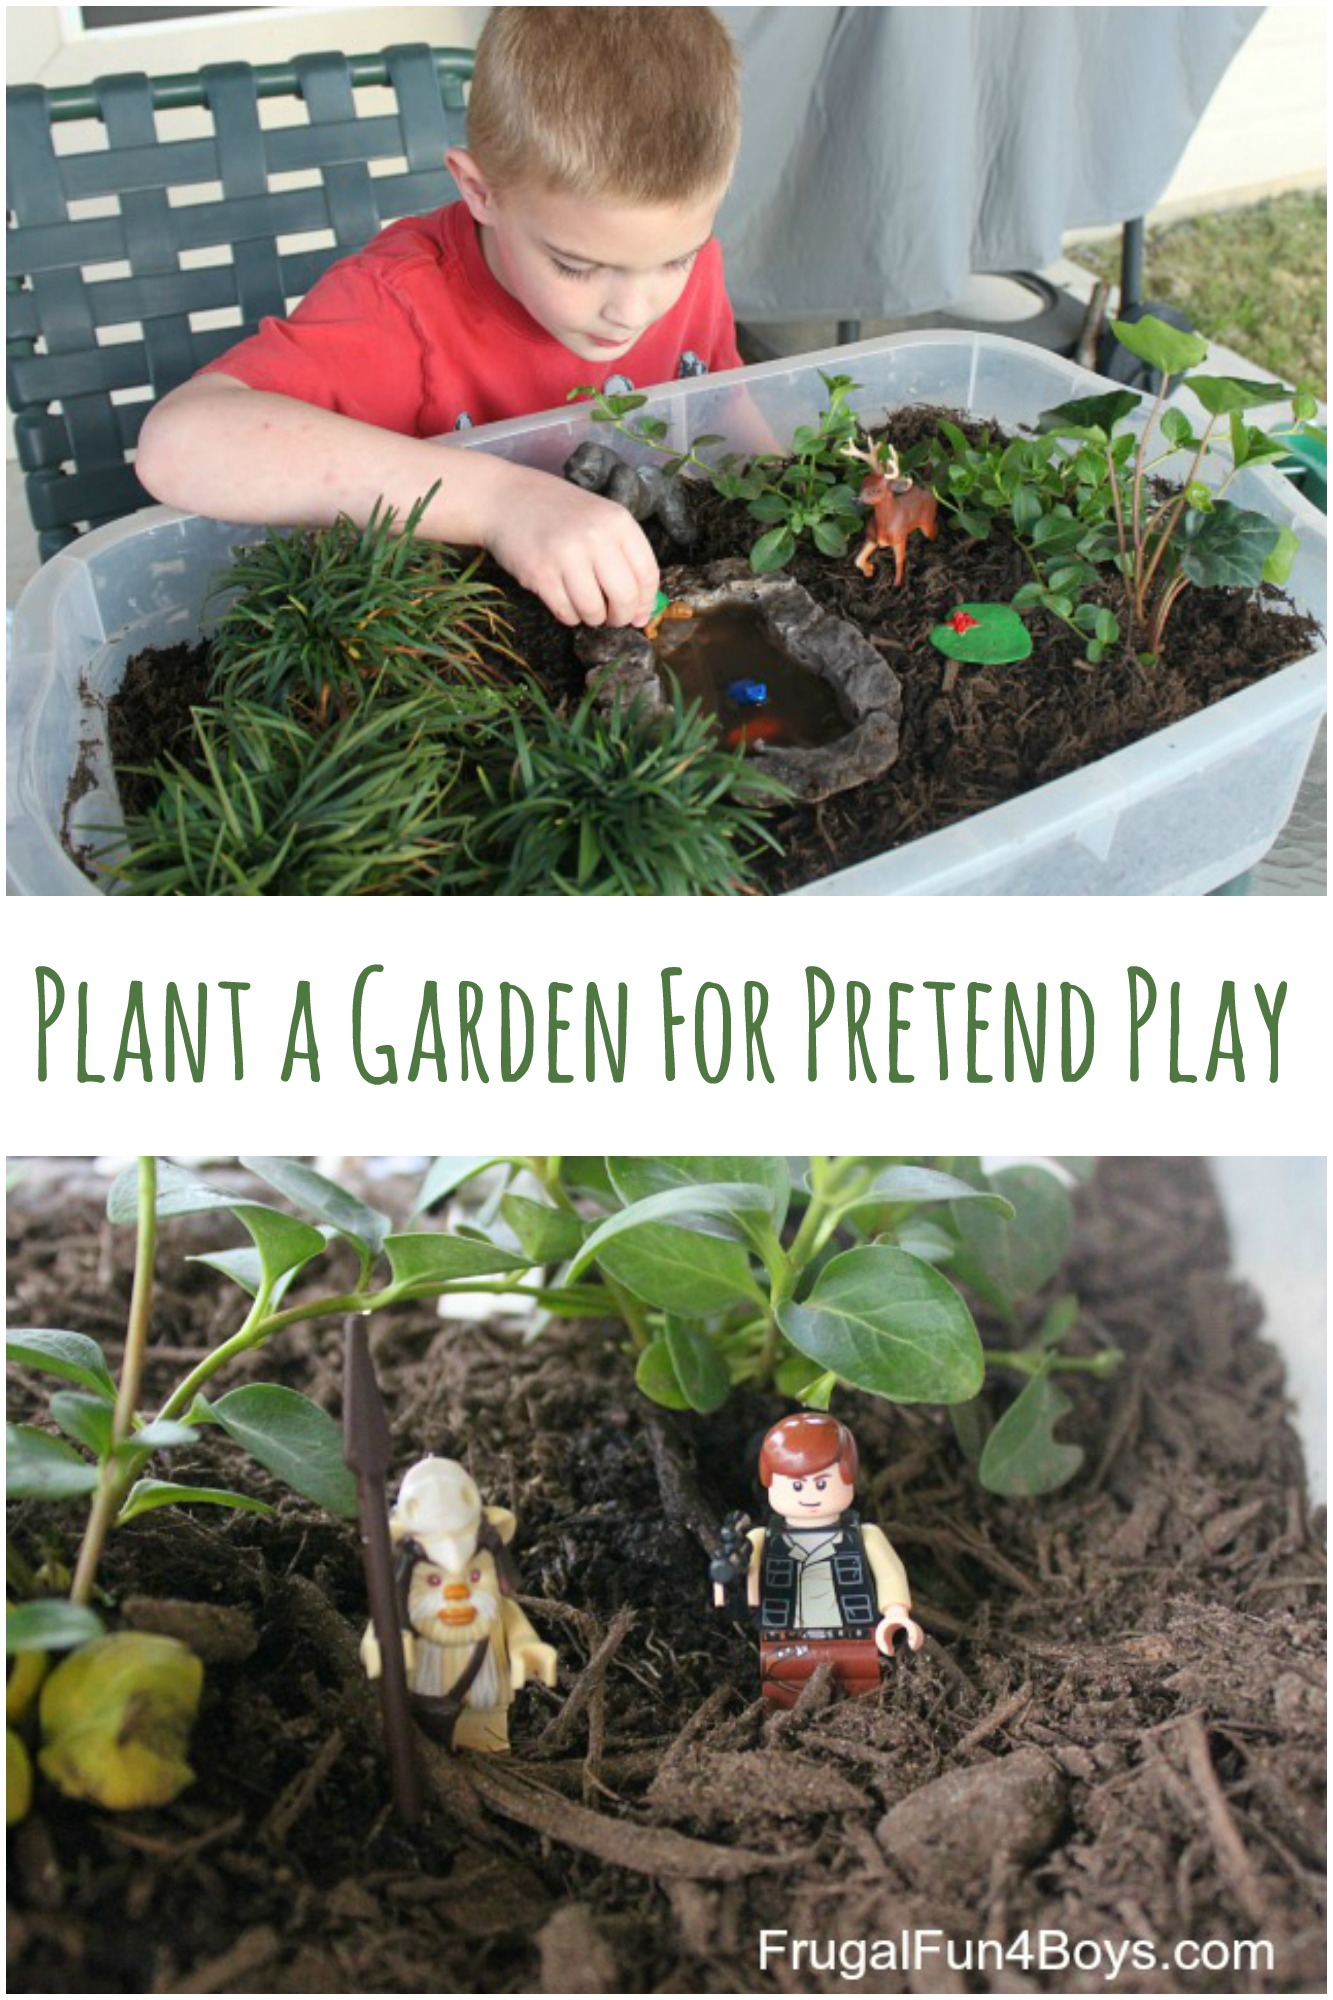 Plant a Garden for Pretend Play! Great for toy animals, LEGO guys, and more!